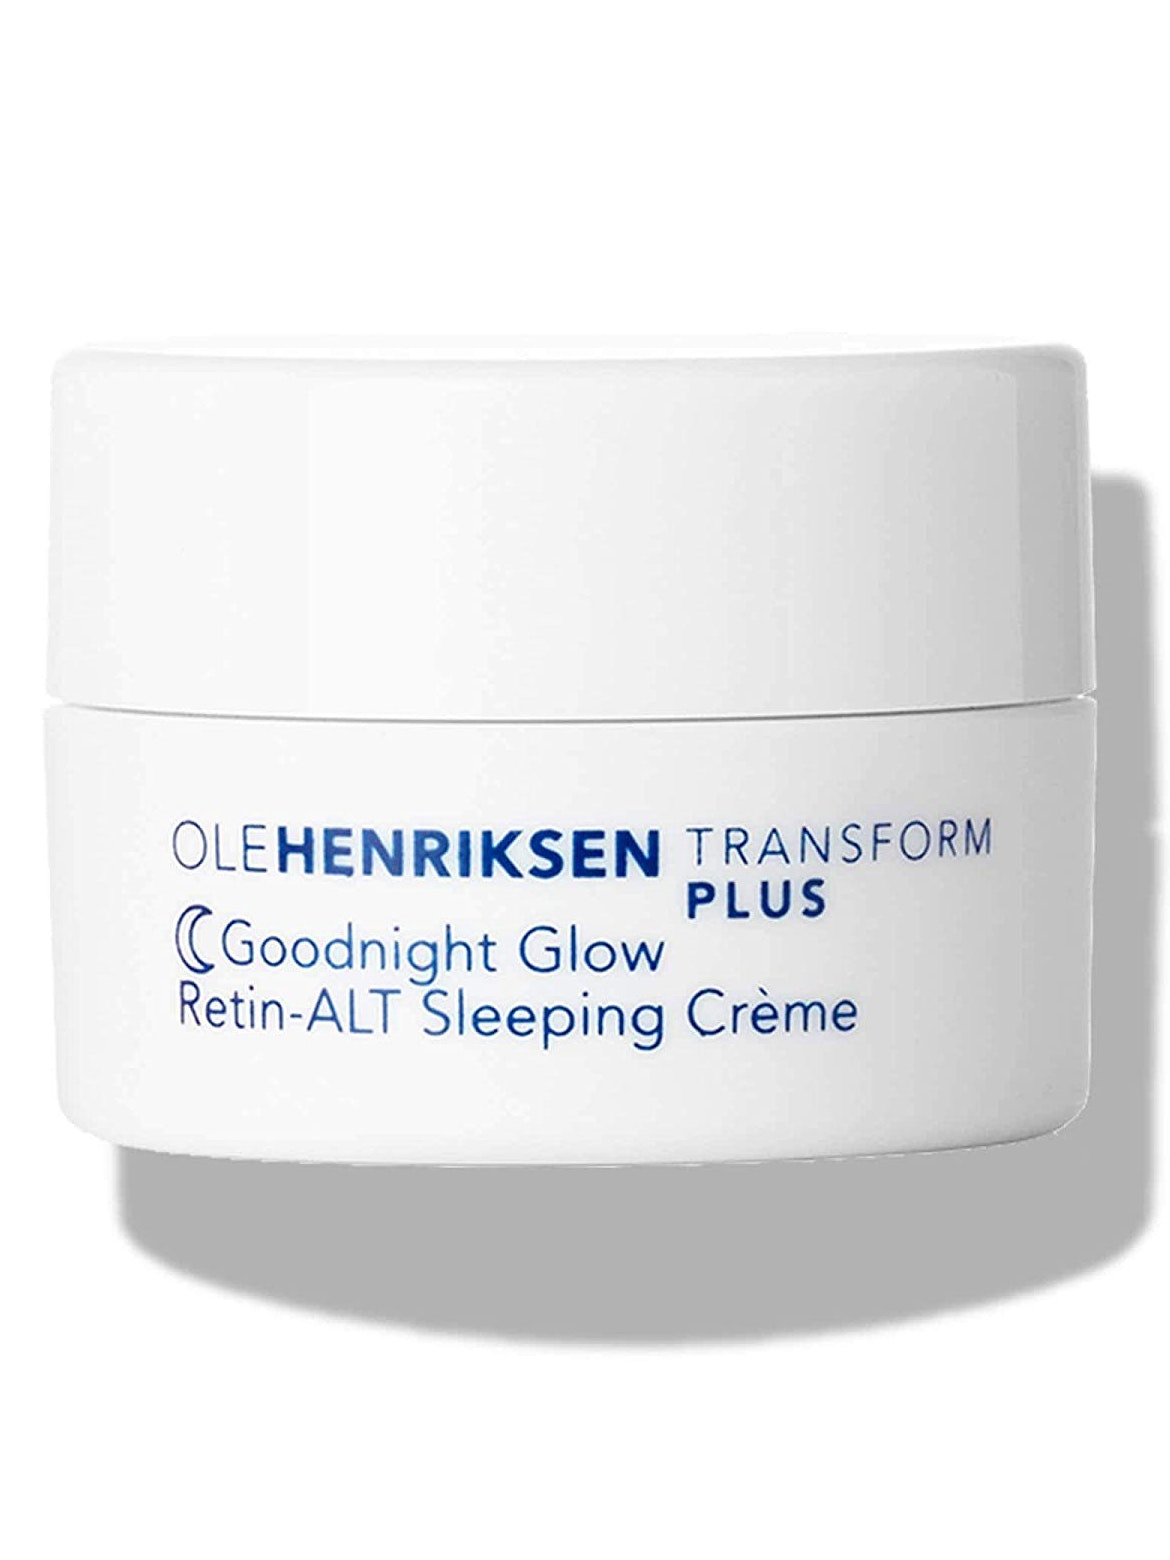 OleHenriksen® Goodnight Glow™ Retin-ALT Sleeping Crème